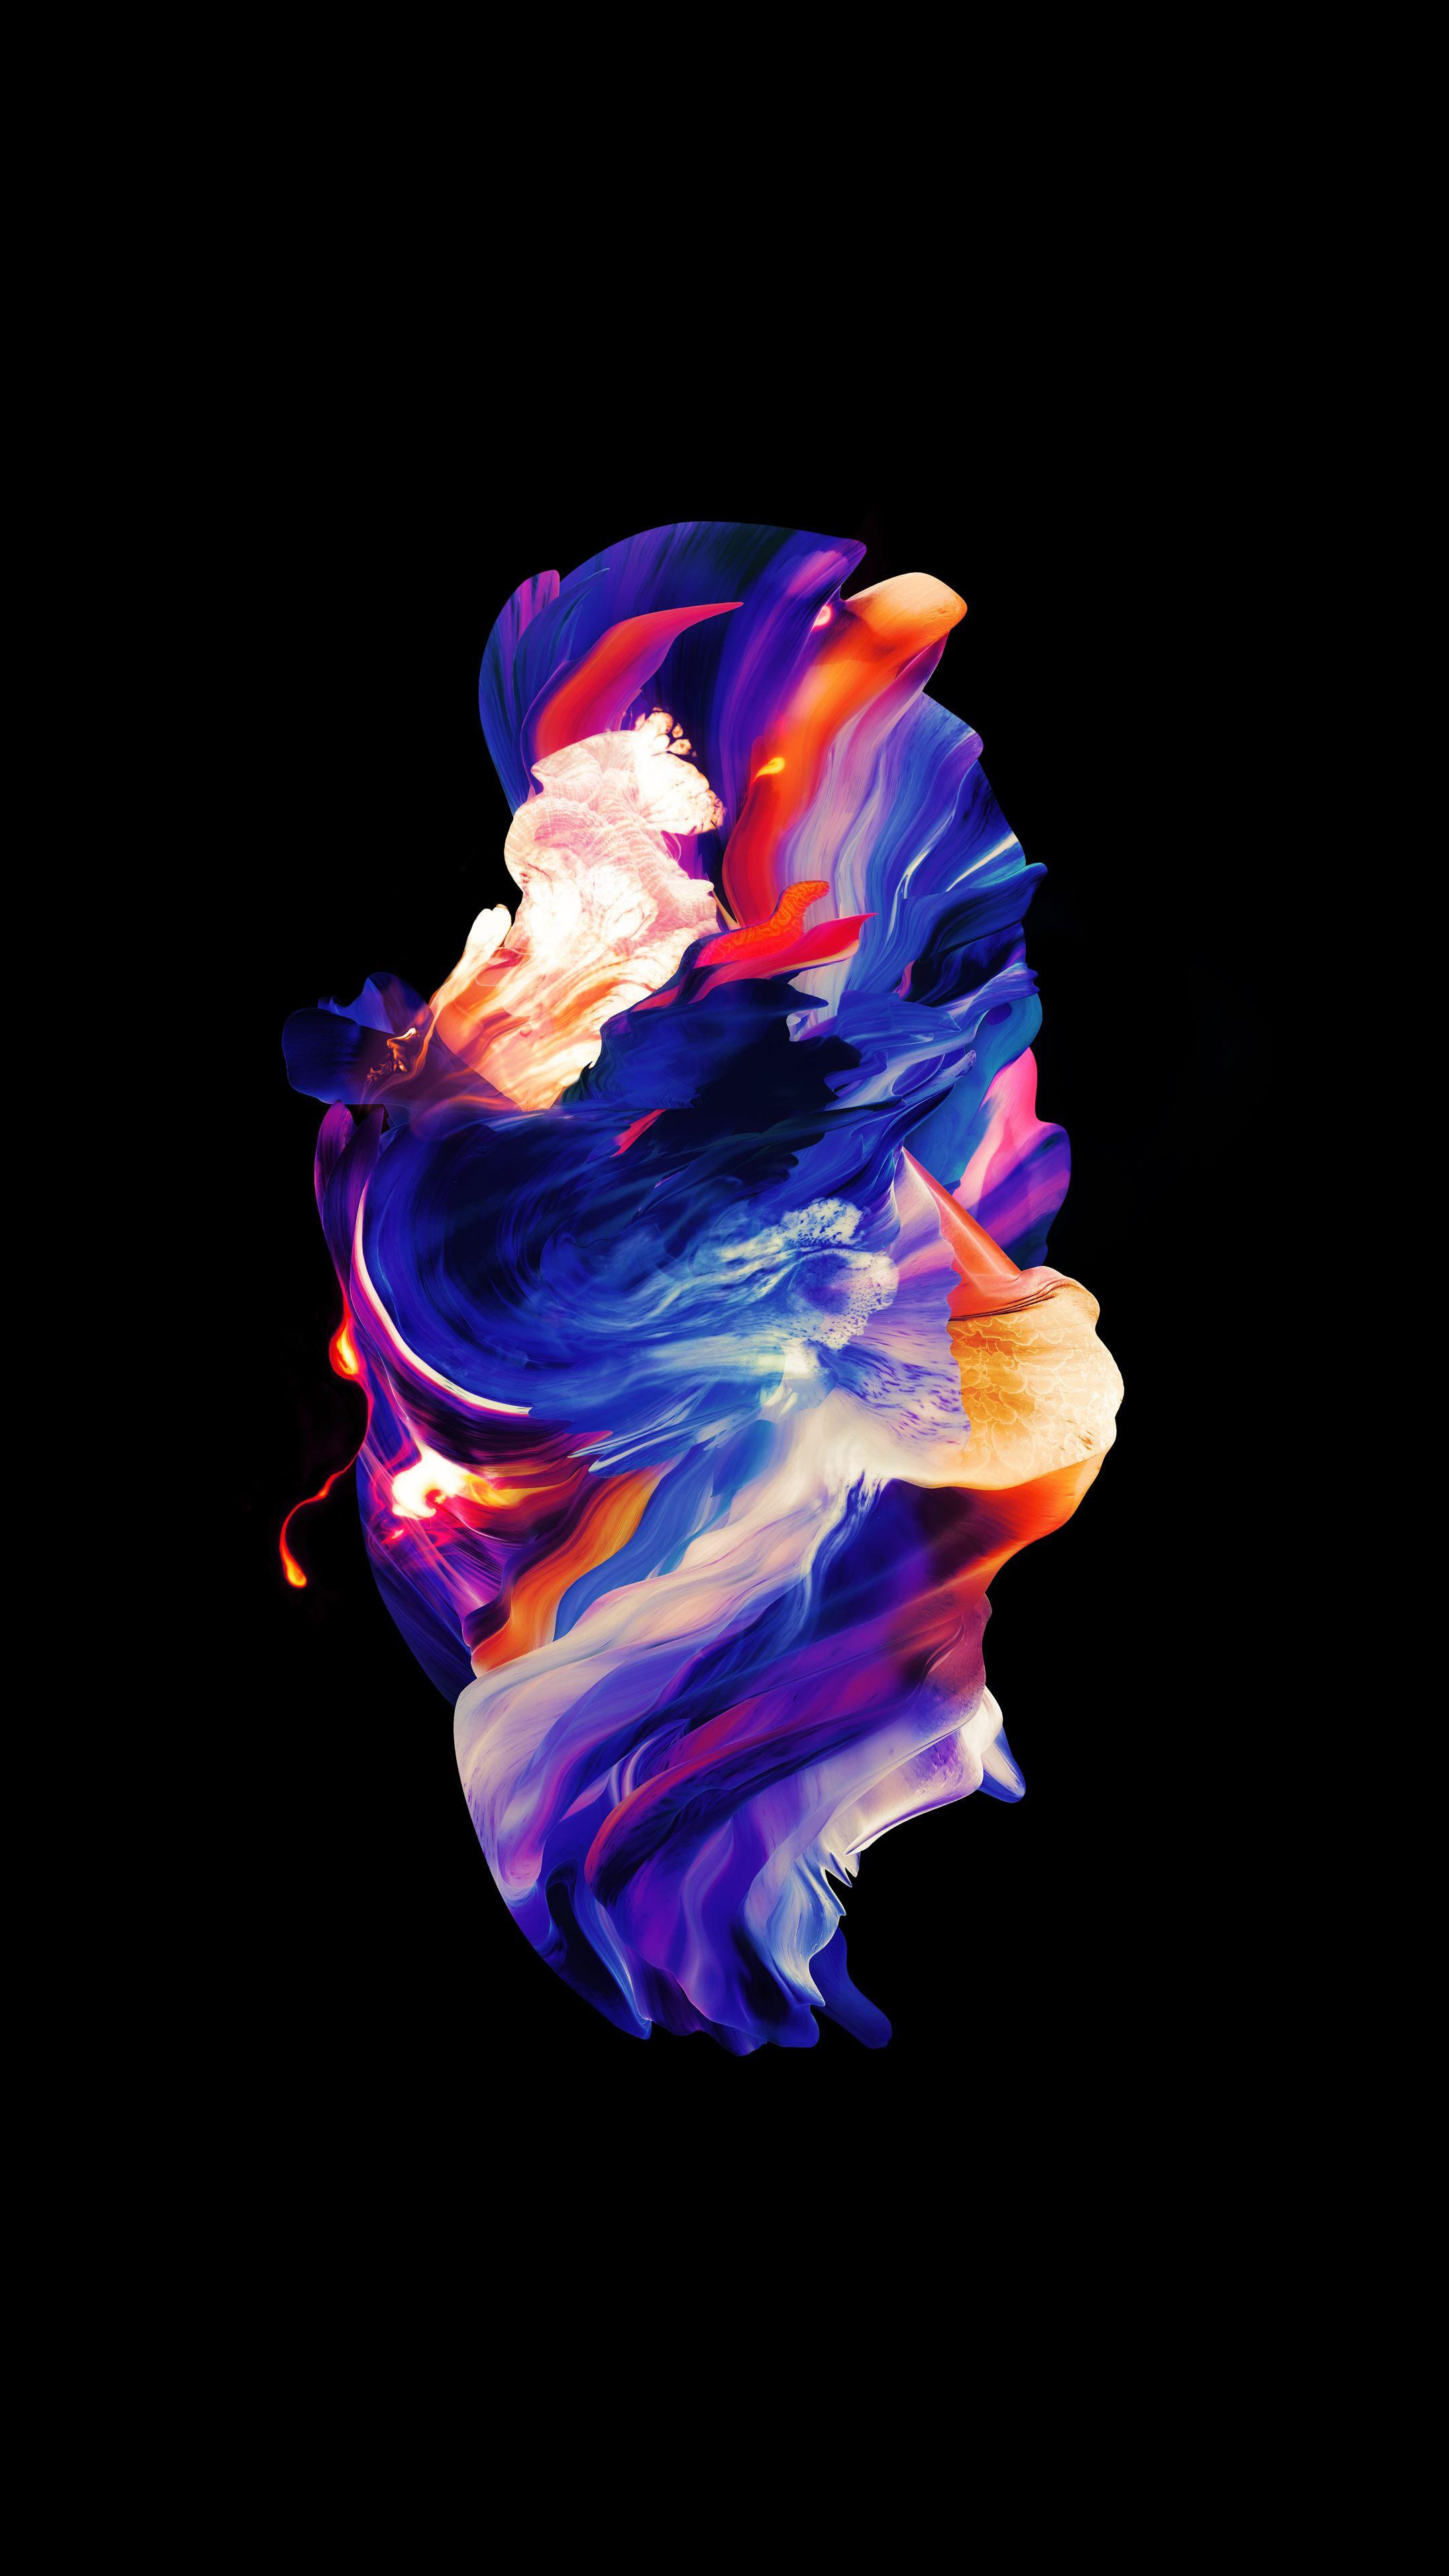 Oneplus 5 Wallpapers Amoled Black Edit 4k 2160x3840 Oneplus